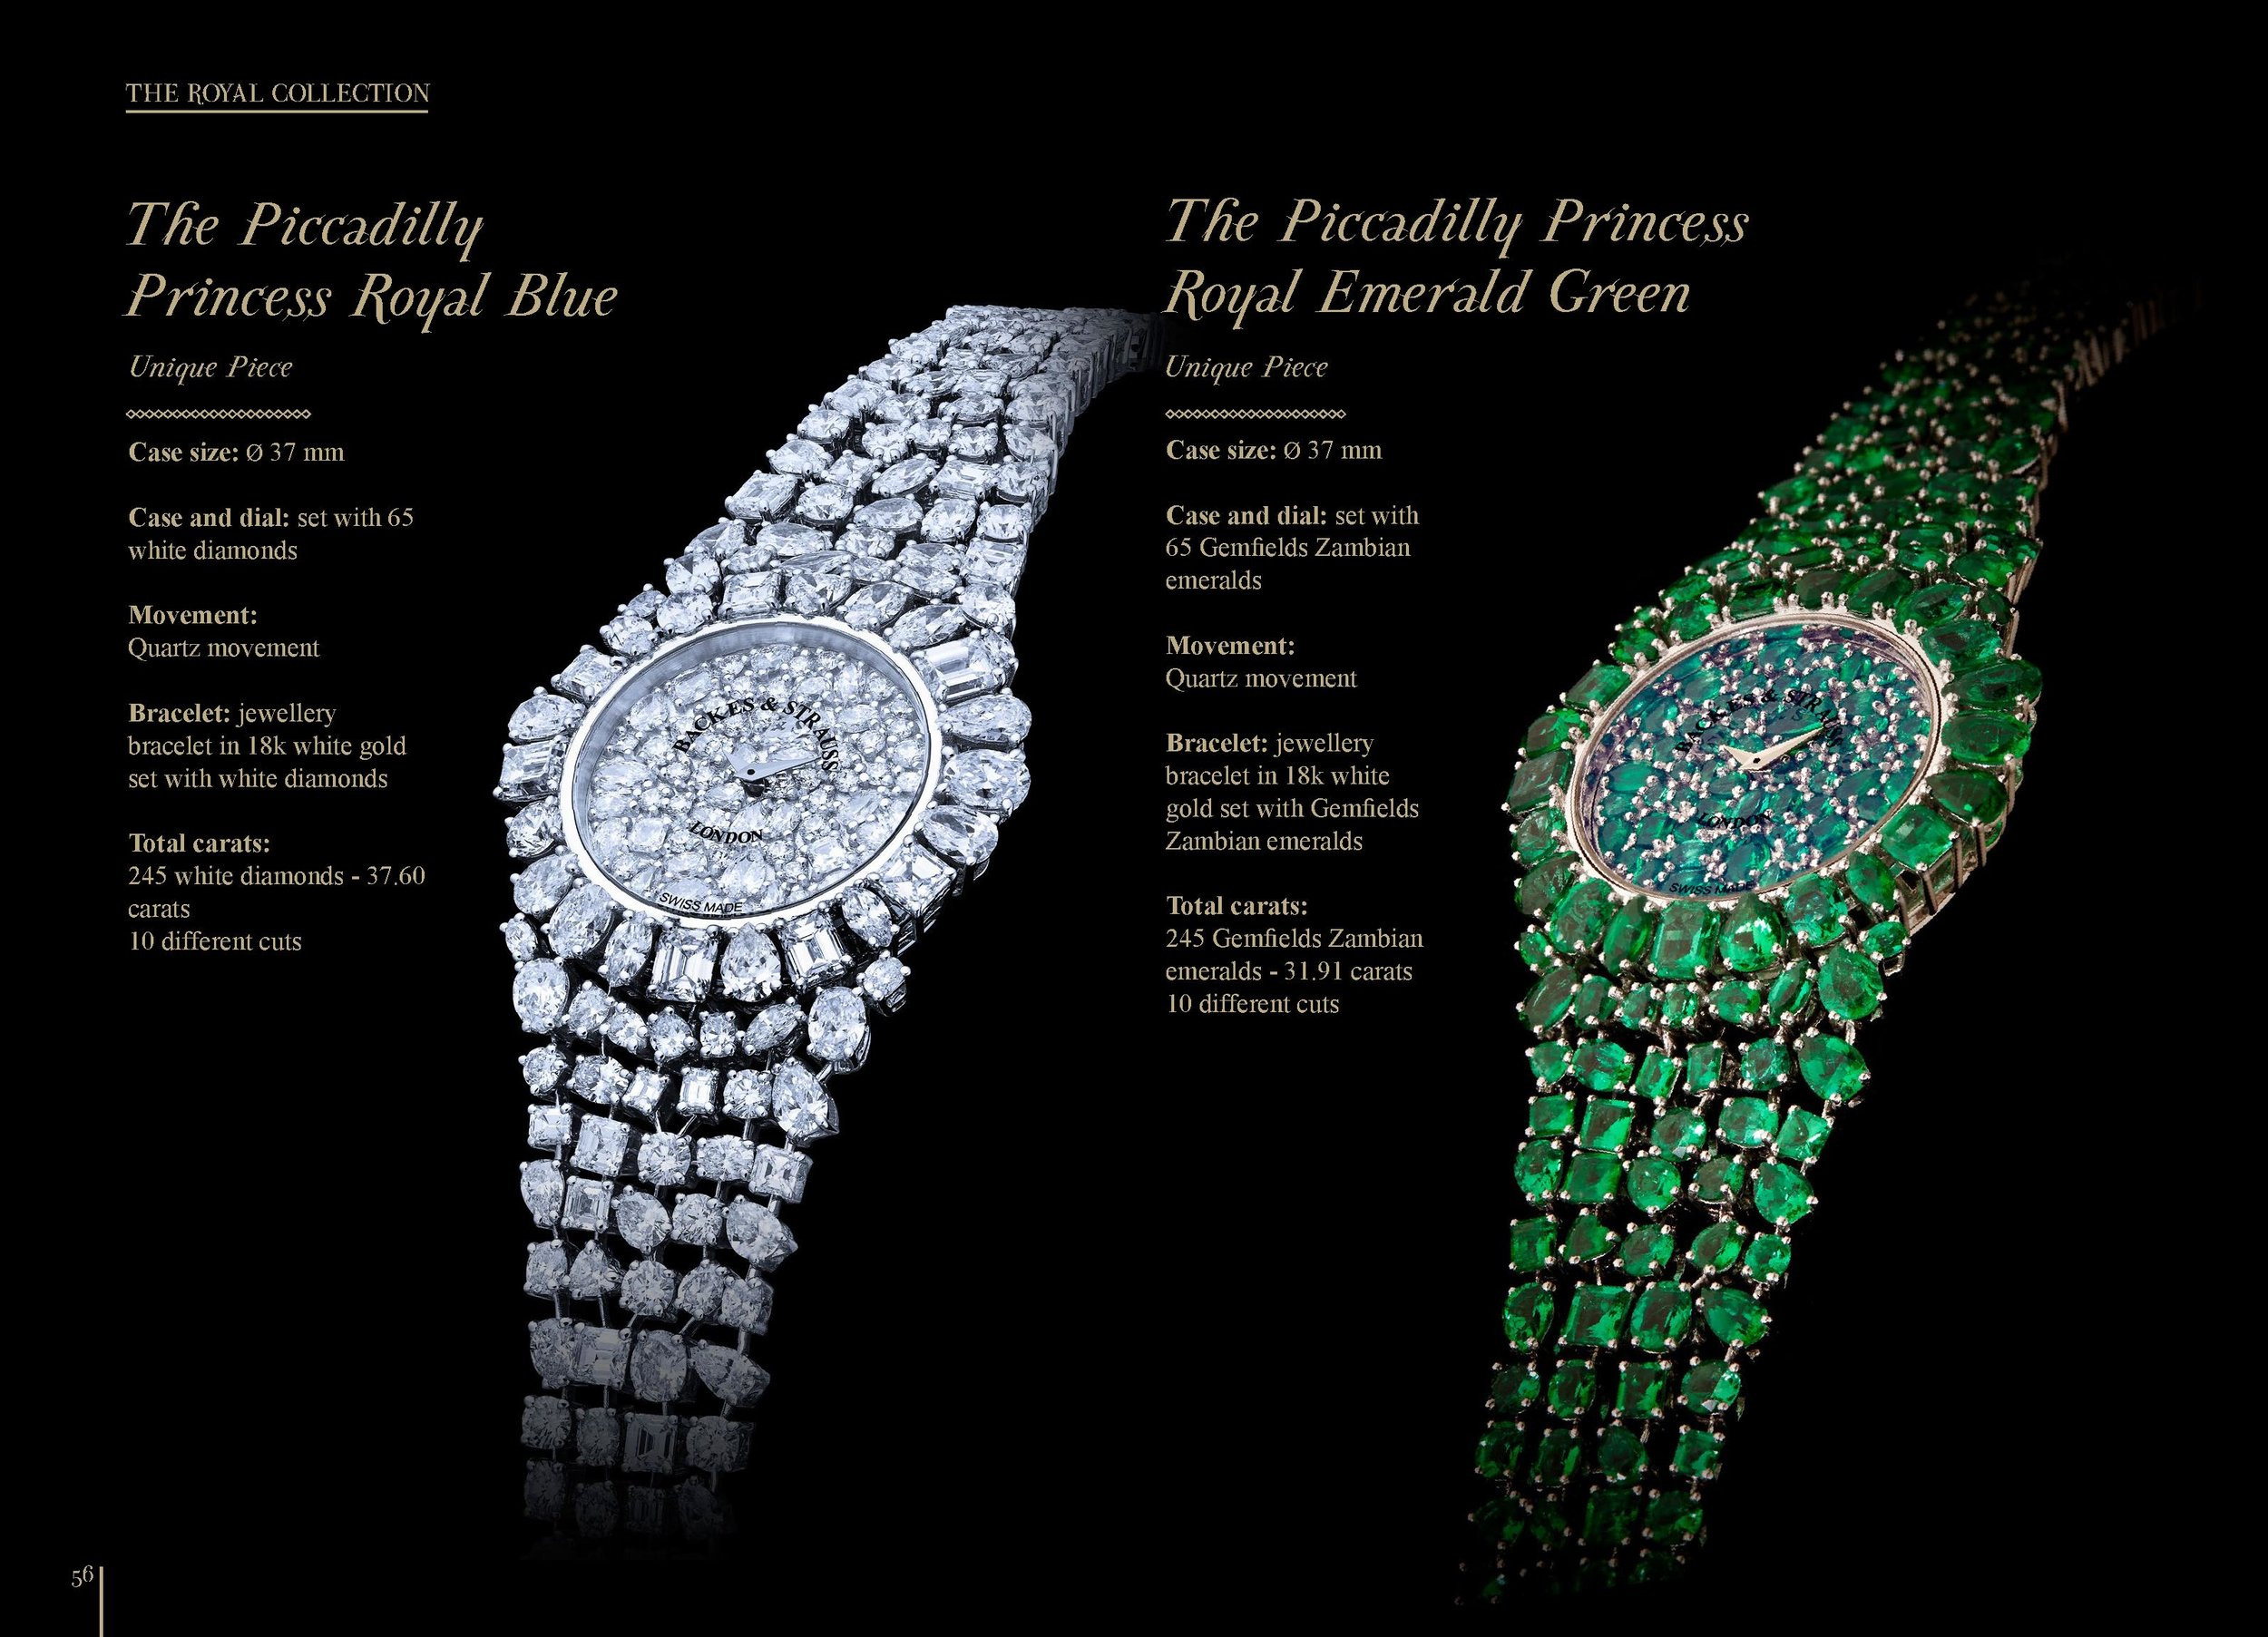 The Piccadilly Princess Royal Emerald Green and Blue masterpiece